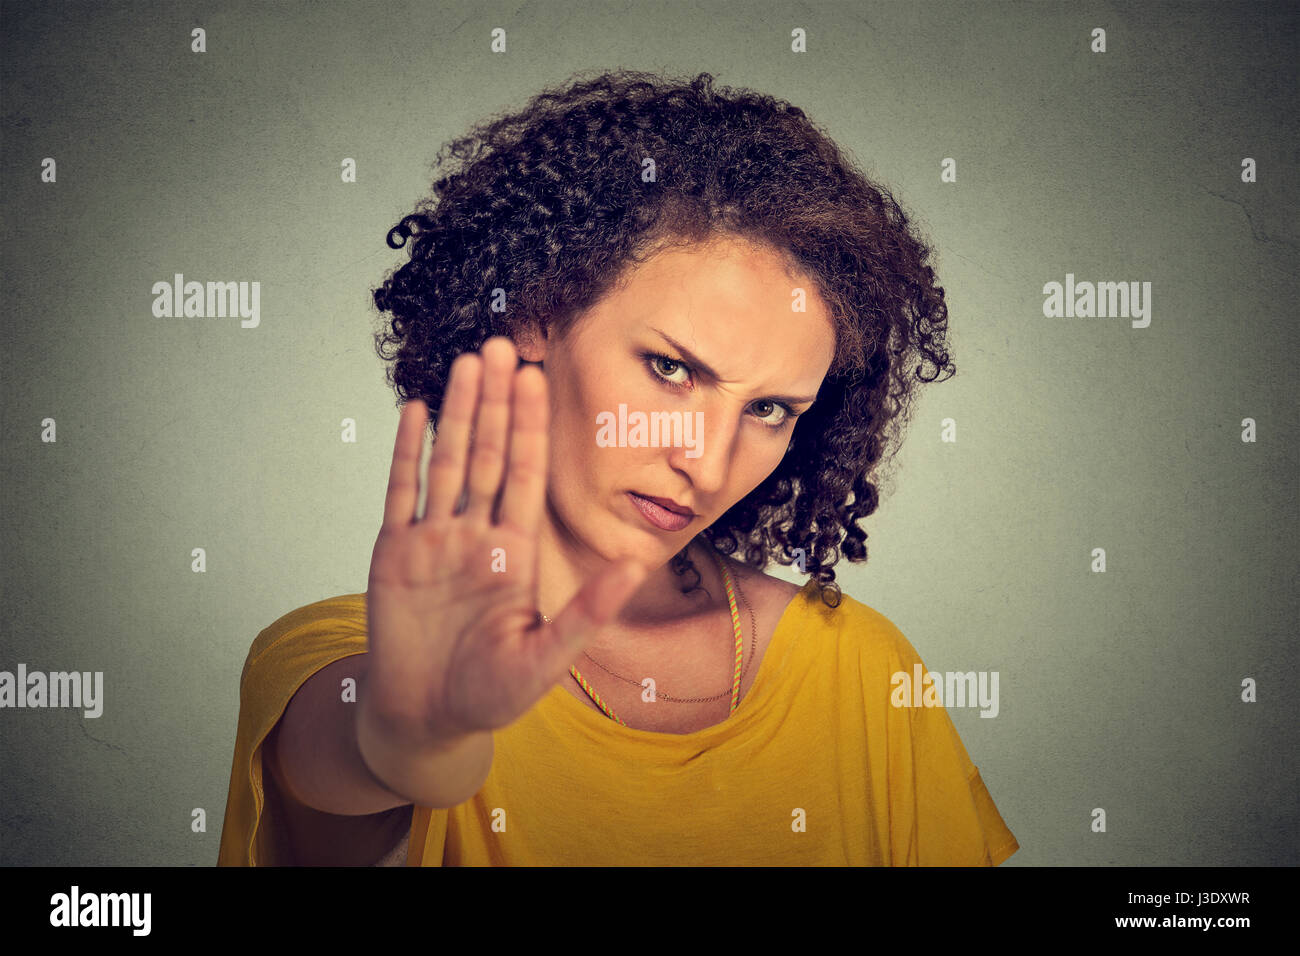 Closeup portrait young annoyed angry woman with bad attitude giving talk to hand gesture with palm outward isolated - Stock Image